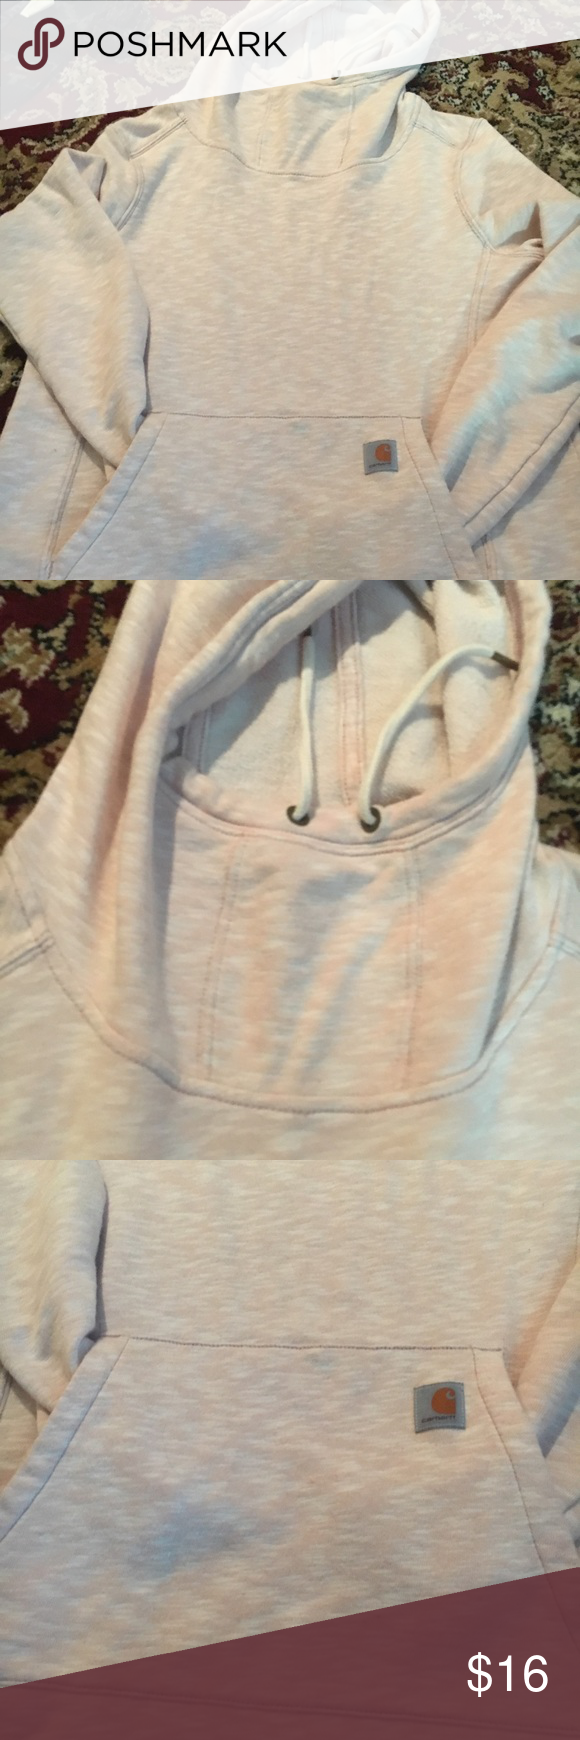 Carhartt women's size medium light sweatshirt Light pink semi fitted medium Carhartt top. Has a hood and front pocket. This is a women's top. It has slight wear but in overall great condition Carhartt Tops Sweatshirts & Hoodies #carharttwomen Carhartt women's size medium light sweatshirt Light pink semi fitted medium Carhartt top. Has a hood and front pocket. This is a women's top. It has slight wear but in overall great condition Carhartt Tops Sweatshirts & Hoodies #carharttwomen